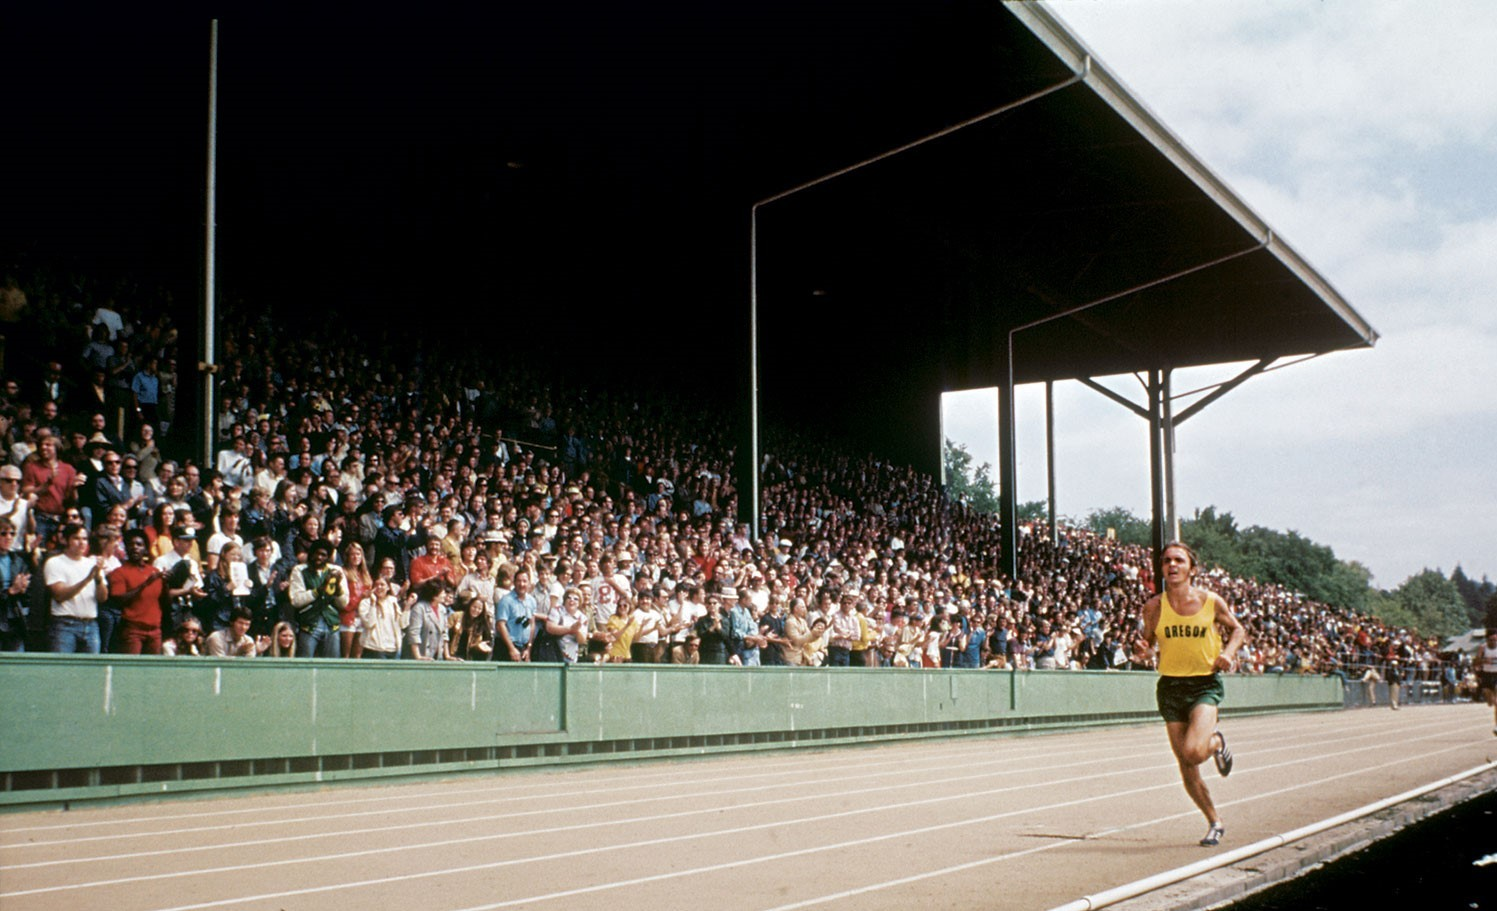 My brother presence electrified Hayward Field in a way that had never been done before, we can't tear down history